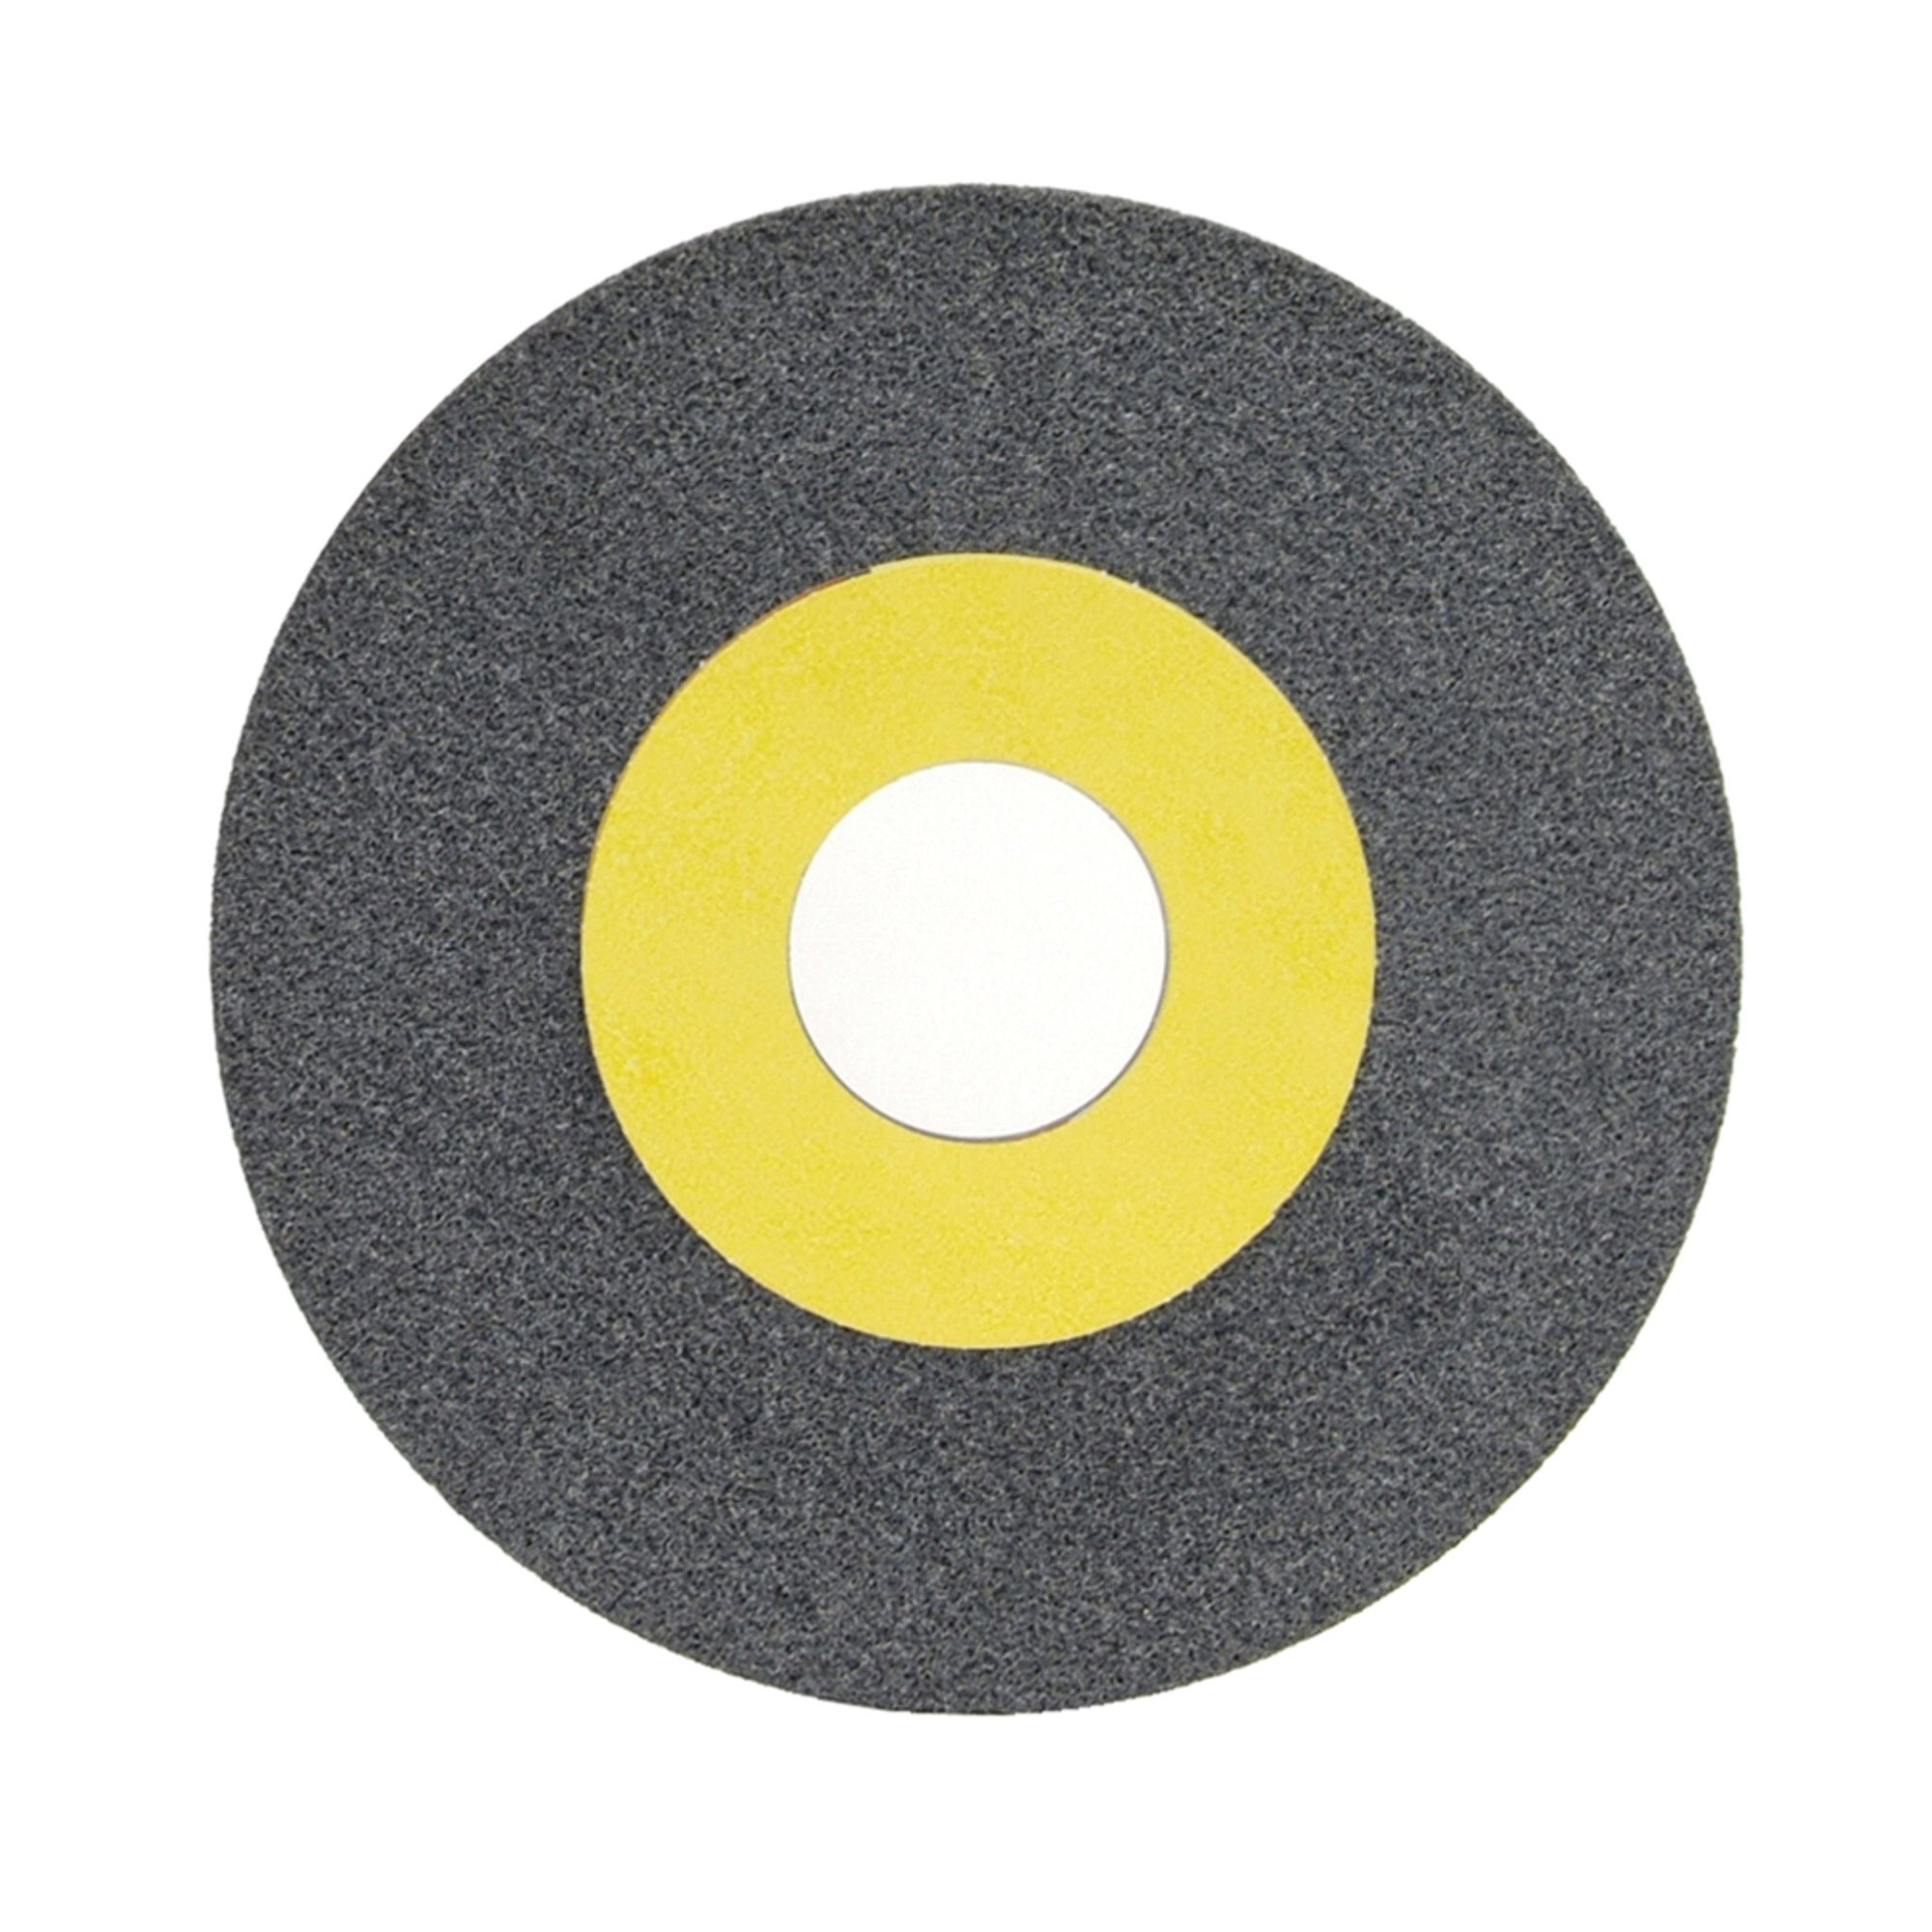 Norton® 66253263144 32A Straight Toolroom Wheel, 12 in Dia x 1-1/2 in THK, 3 in Center Hole, 46 Grit, Aluminum Oxide Abrasive